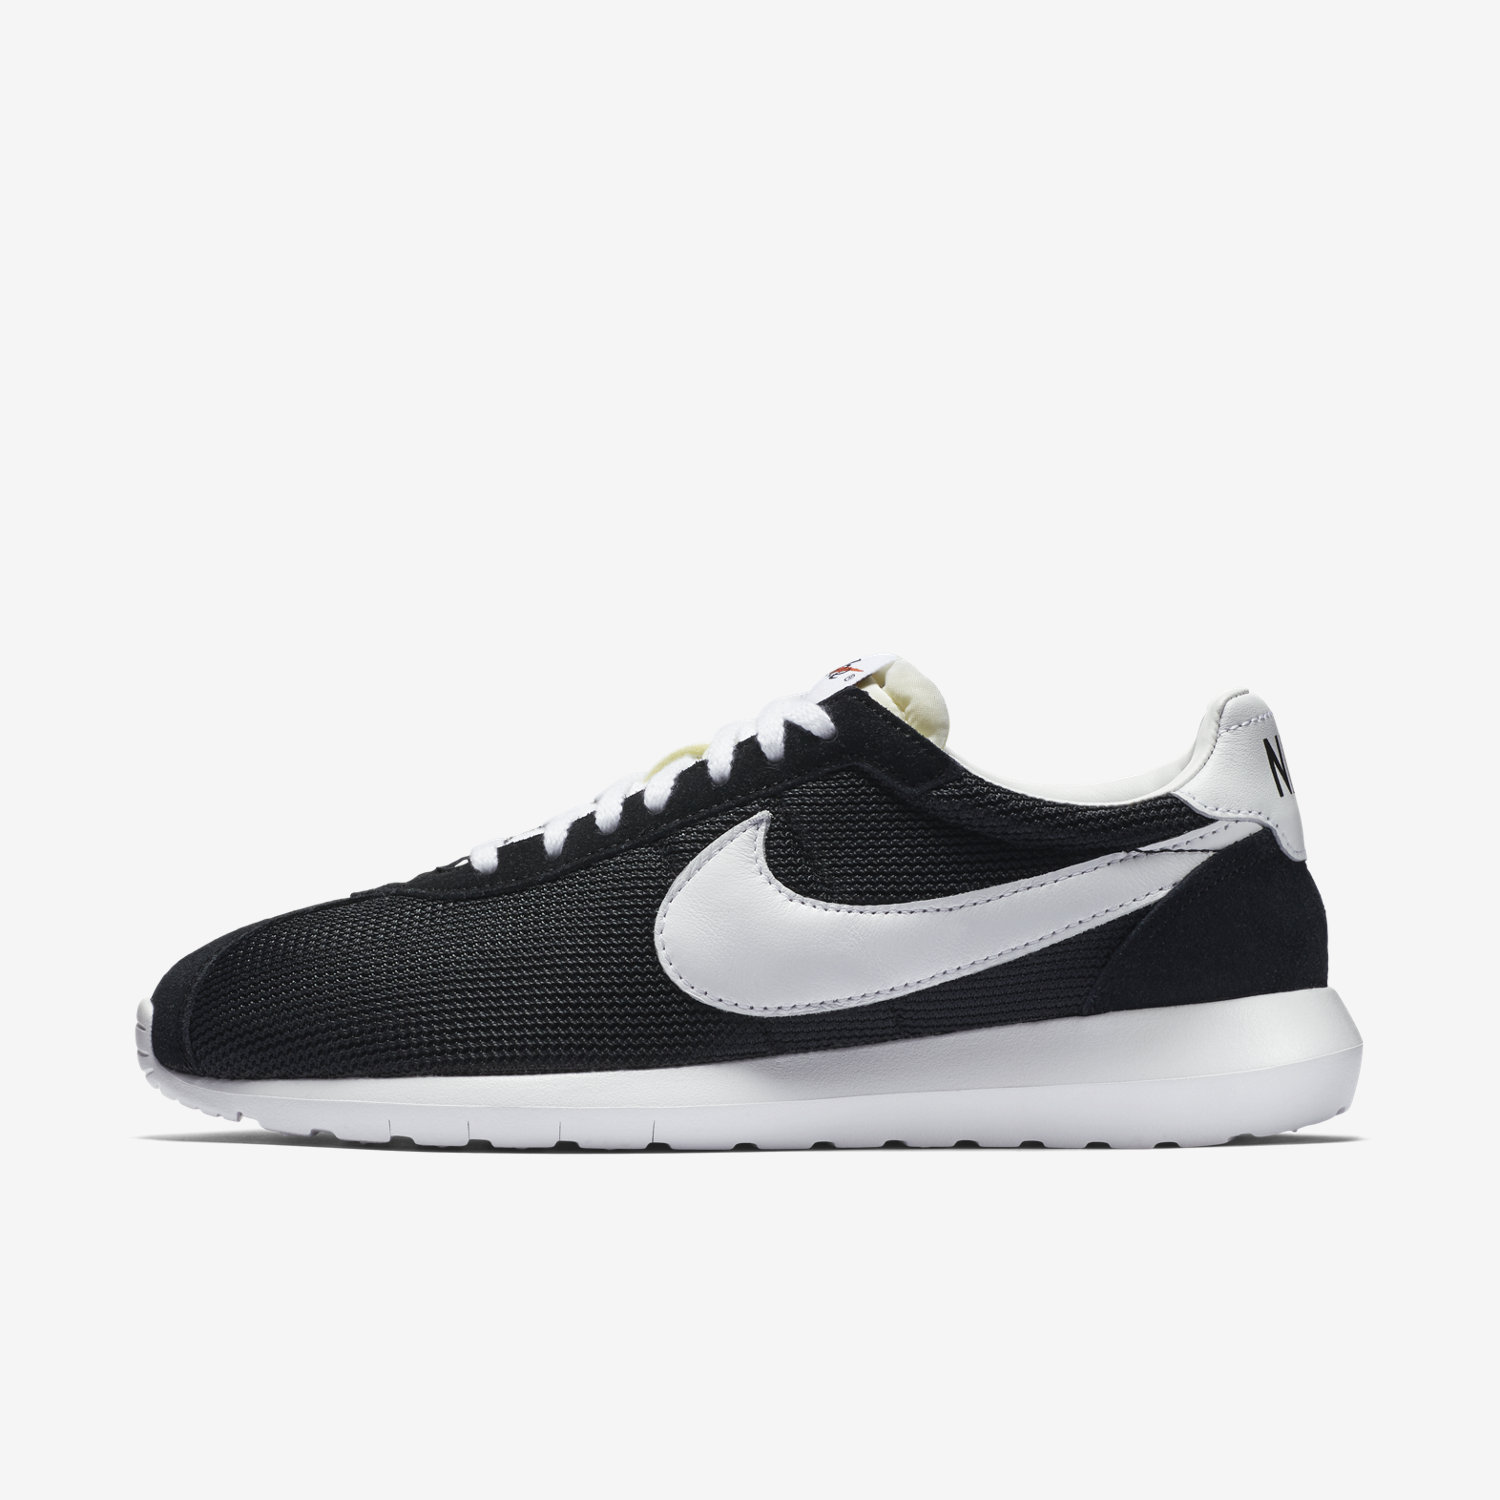 1000+ images about Nike Roshe Run on Pinterest  1ac027545